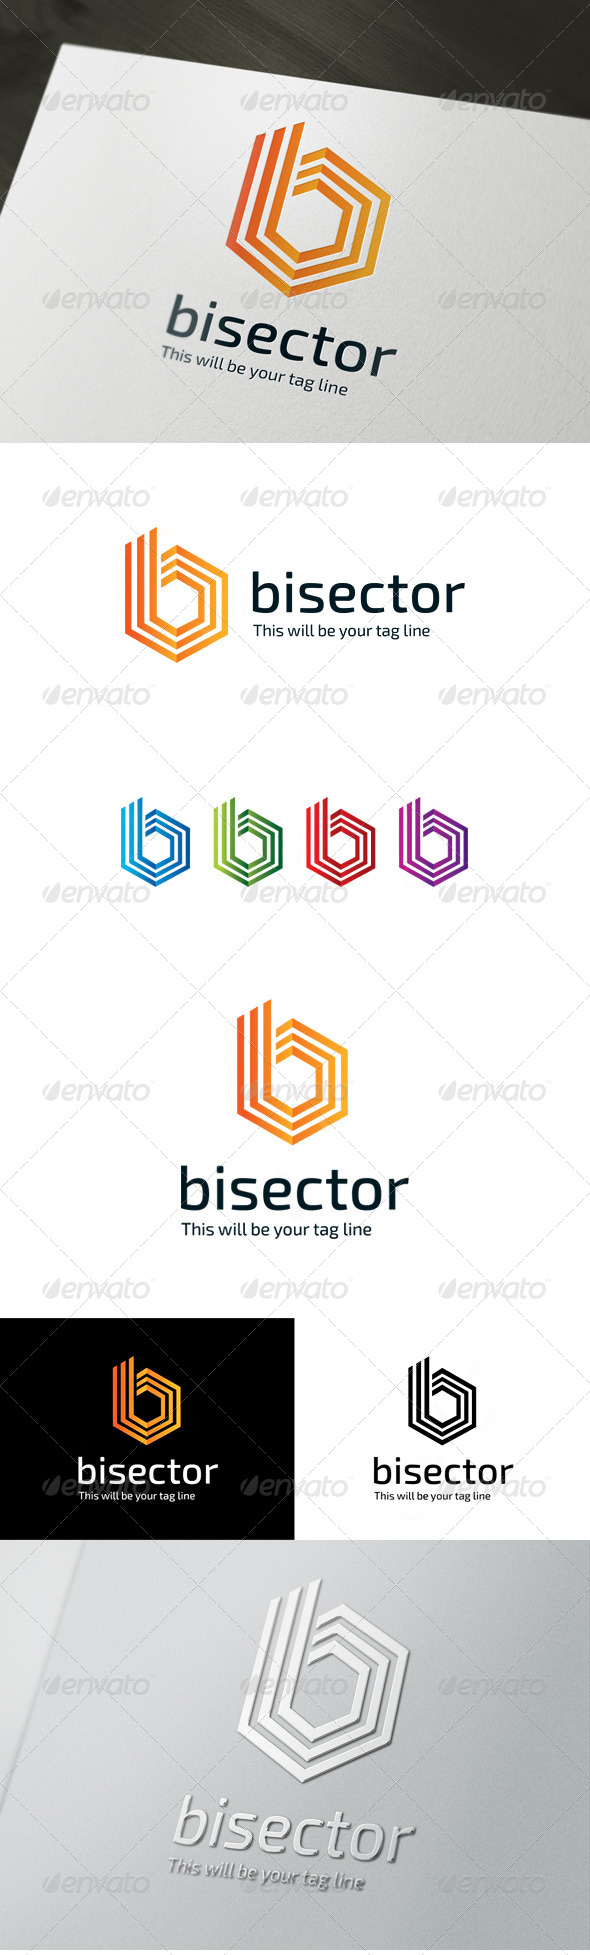 bisector